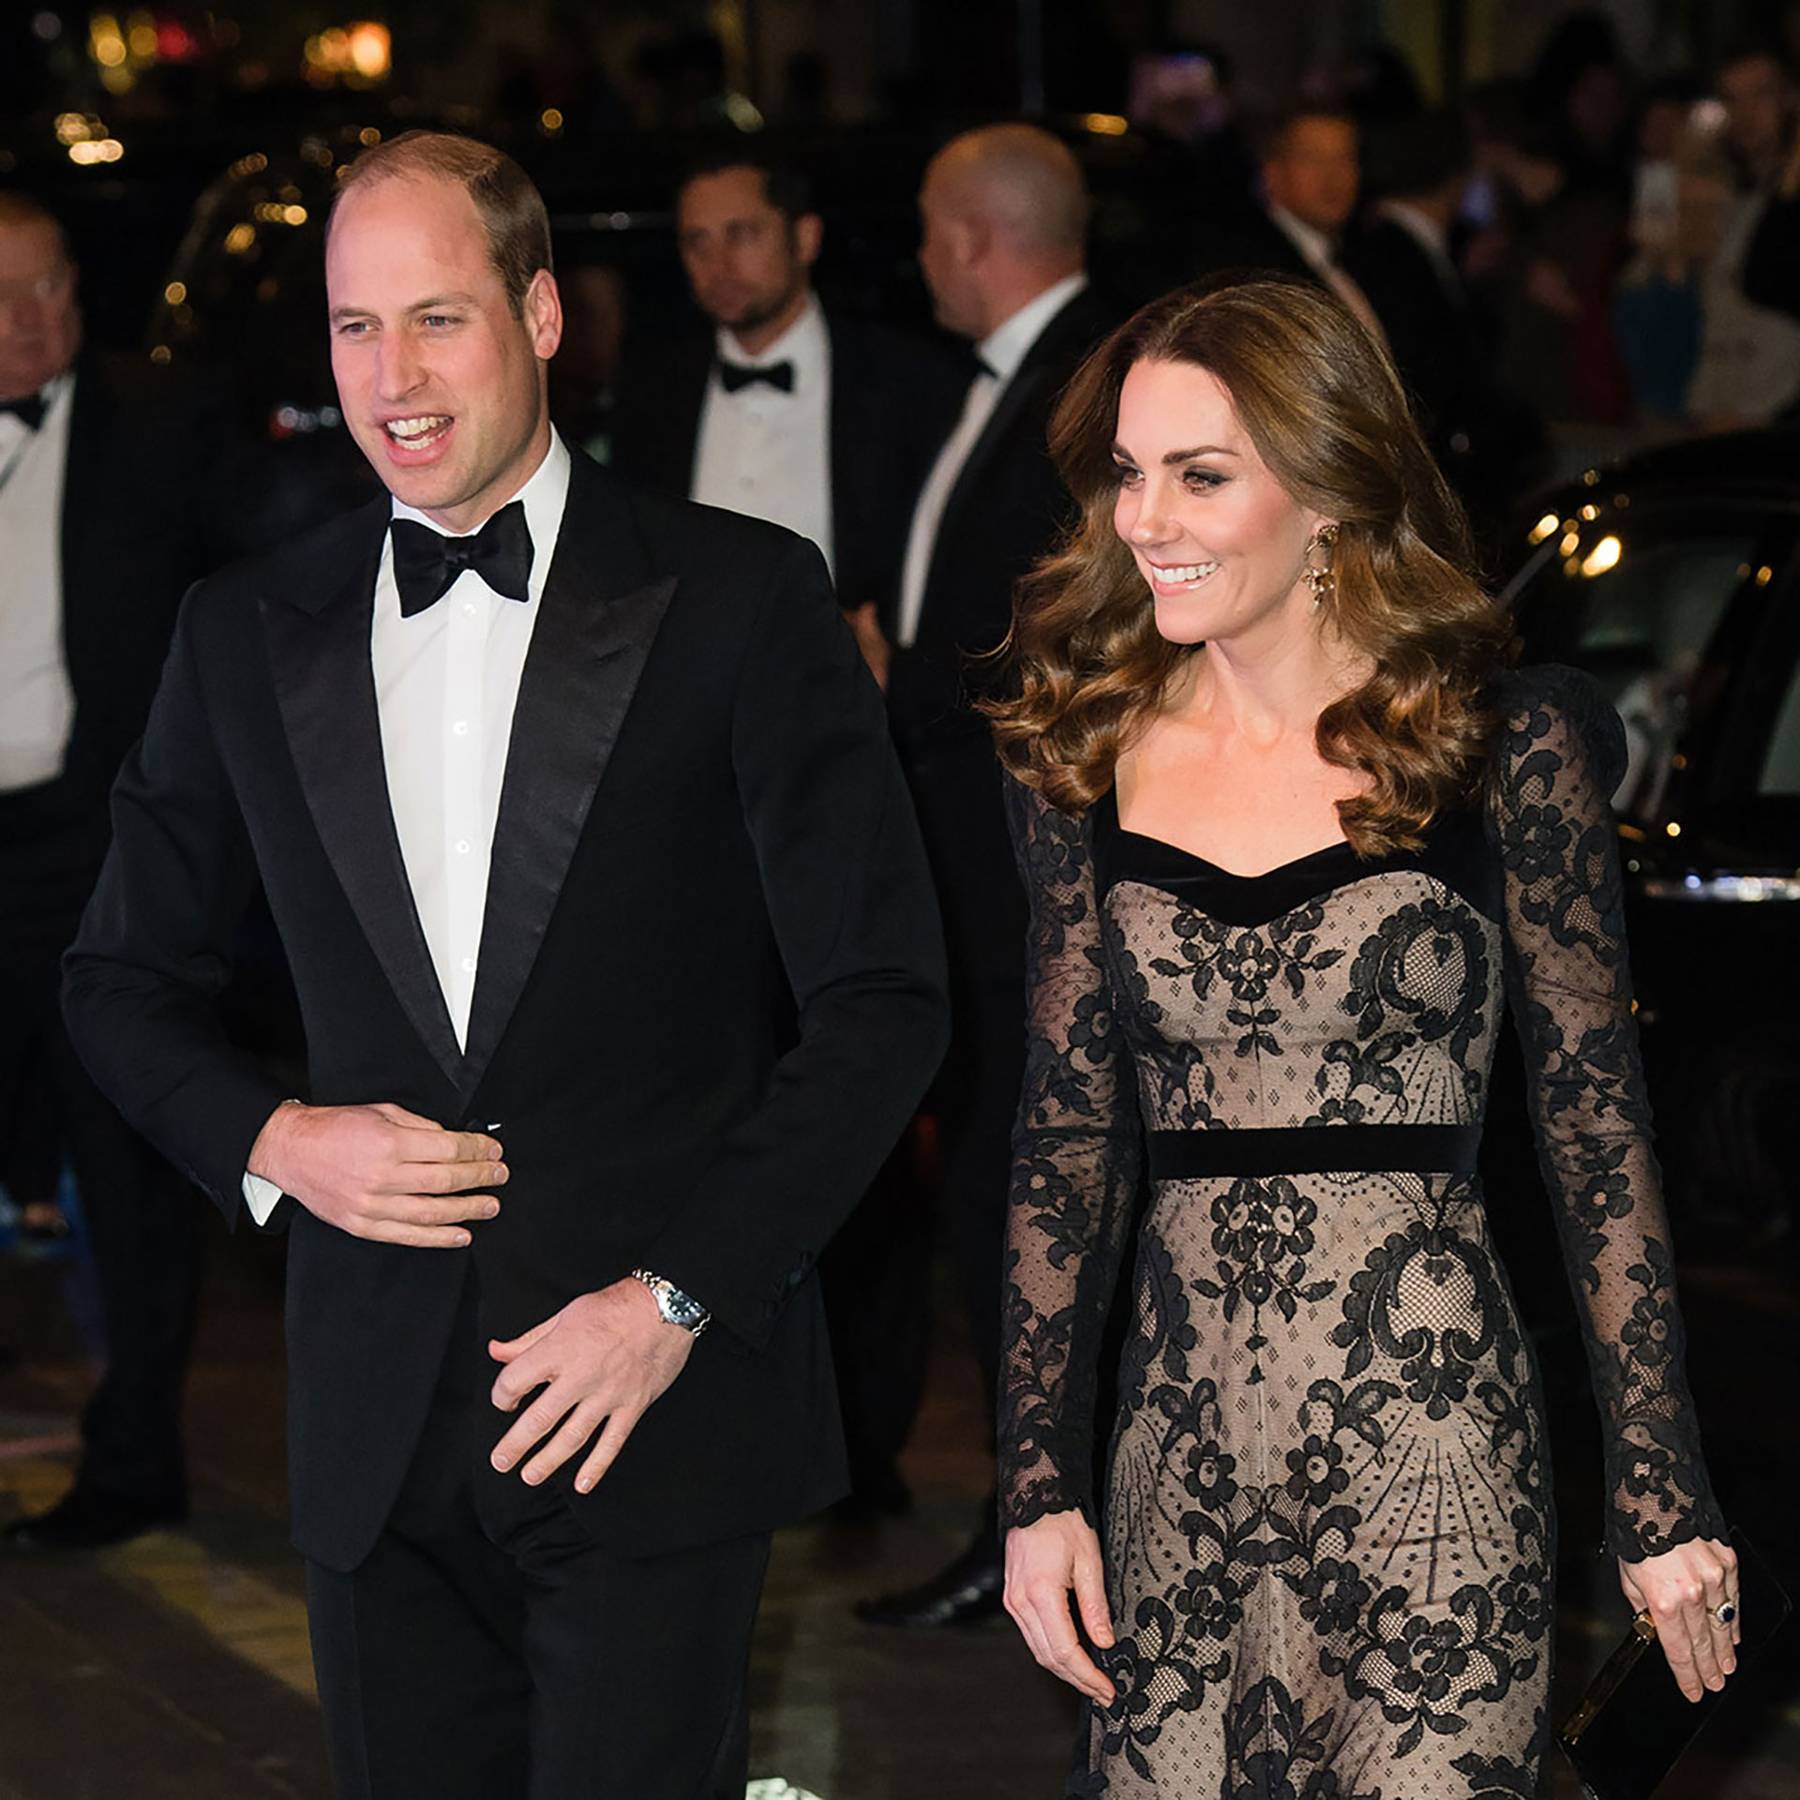 The Duke and Duchess of Cambridge dazzle at the Royal Variety Performance